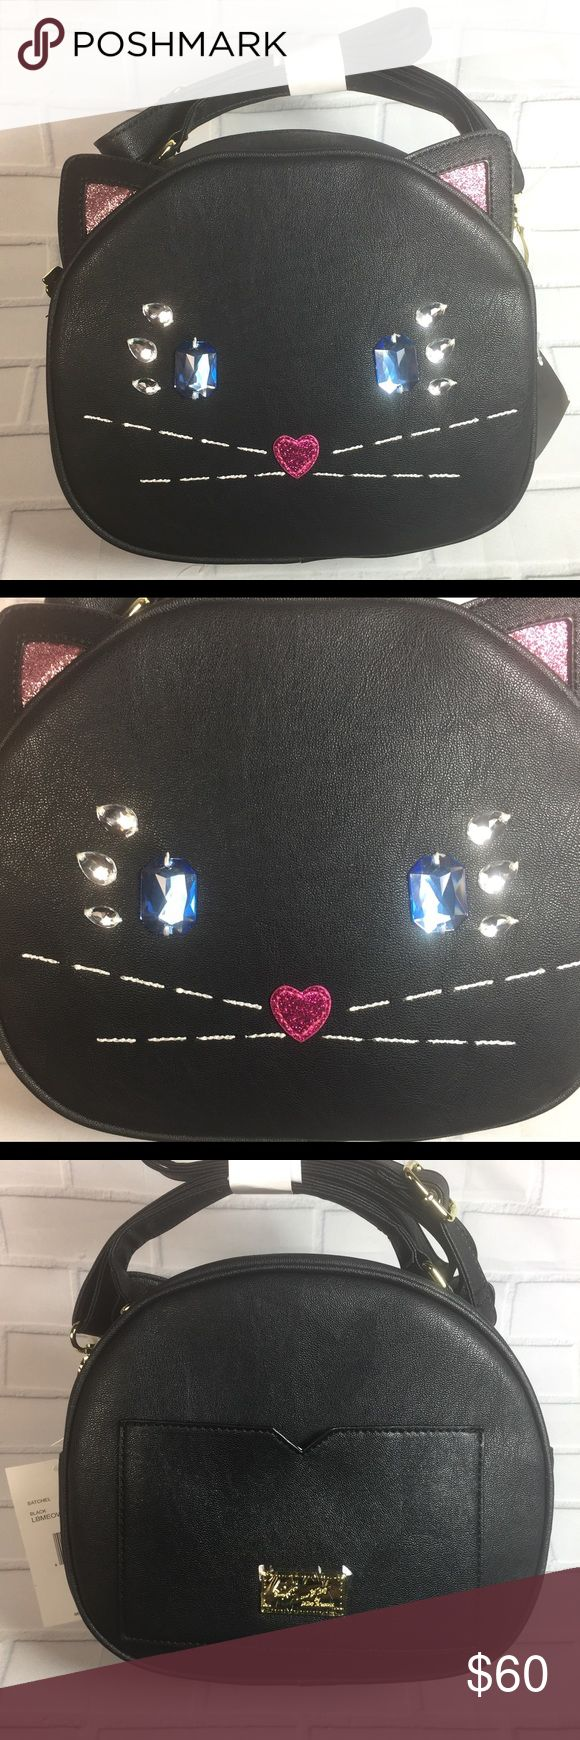 """NWT Betsey Johnson Purse This adorable NWT Betsey Johnson Kitty Jewel Face Mini Crossbody is faux leather and has sparkling jewel accents. This is the larger version, NOT the mini. There's an adjustable crossbody strap, zippered top closure and an exterior slip pocket. The interior features one zippered pocket, two slip/cellphone pockets, and is lined with striped fabric. It measures 9"""" x 8"""" x 4"""". (I don't want to """"unwrap"""" the bindings; therefore, I'm adding a few stock pictures for better…"""